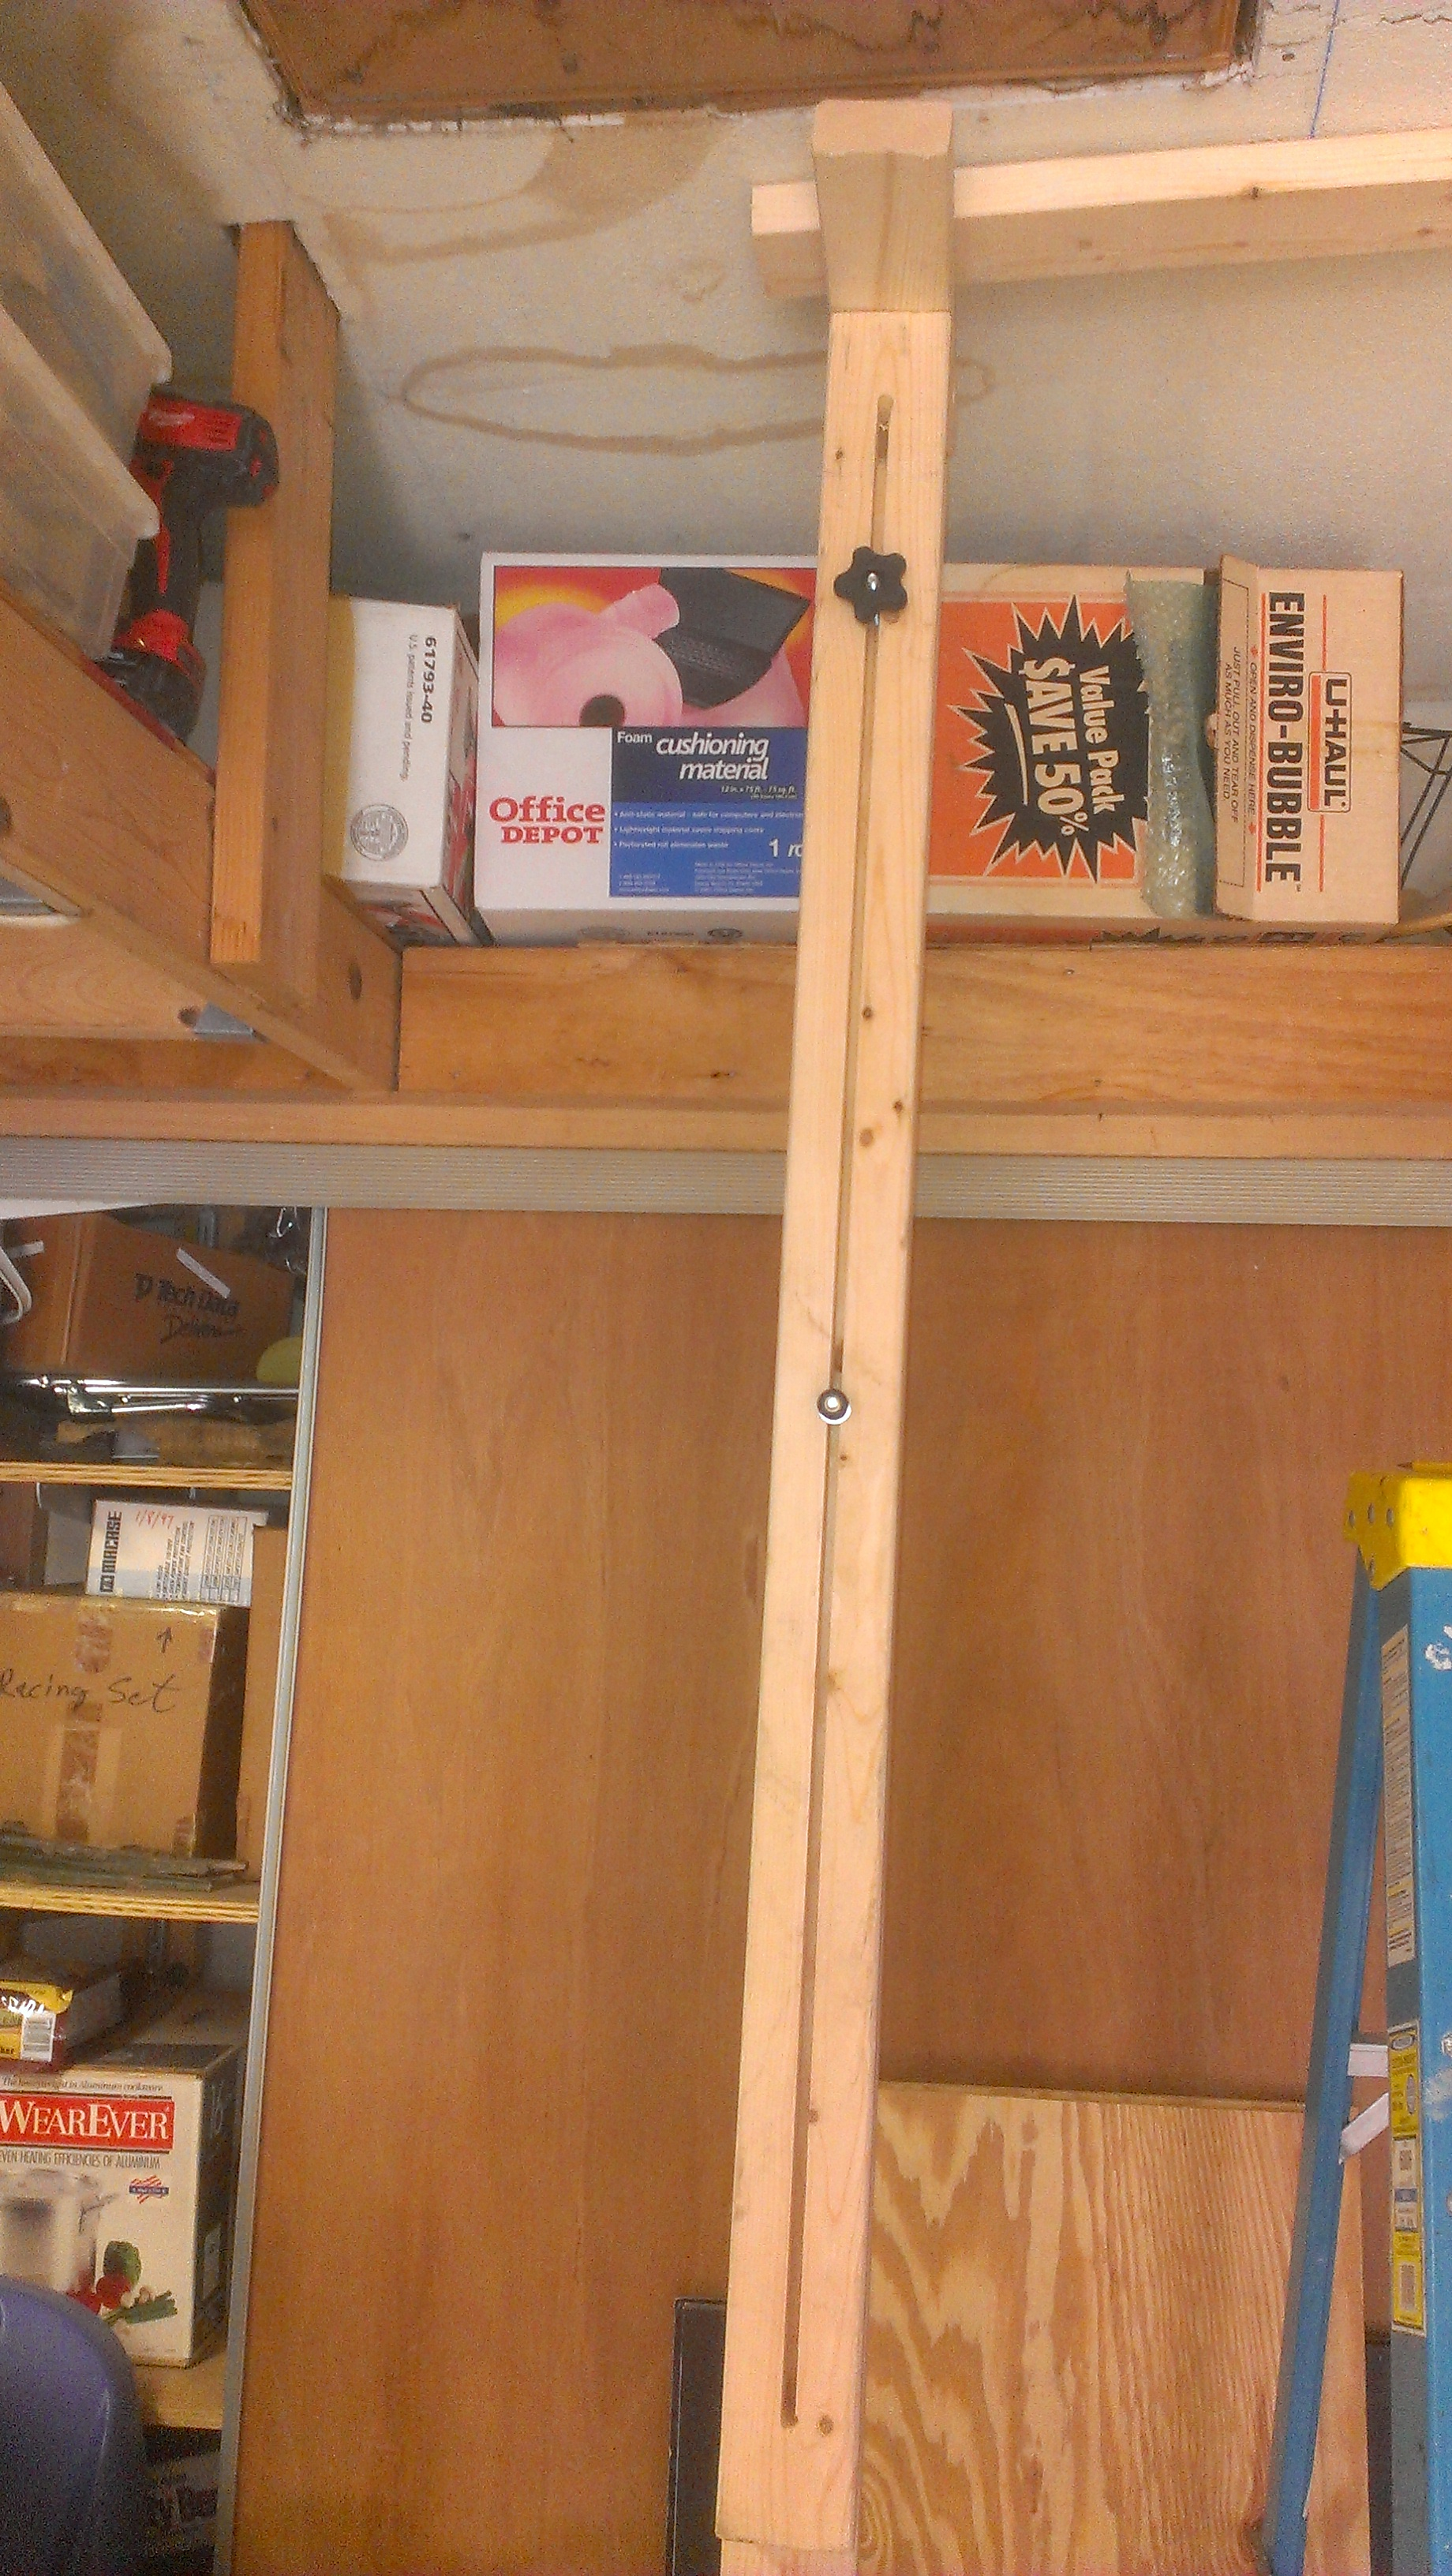 Third hand for affixing molding, 2 x 4s, or drywall to a ceiling